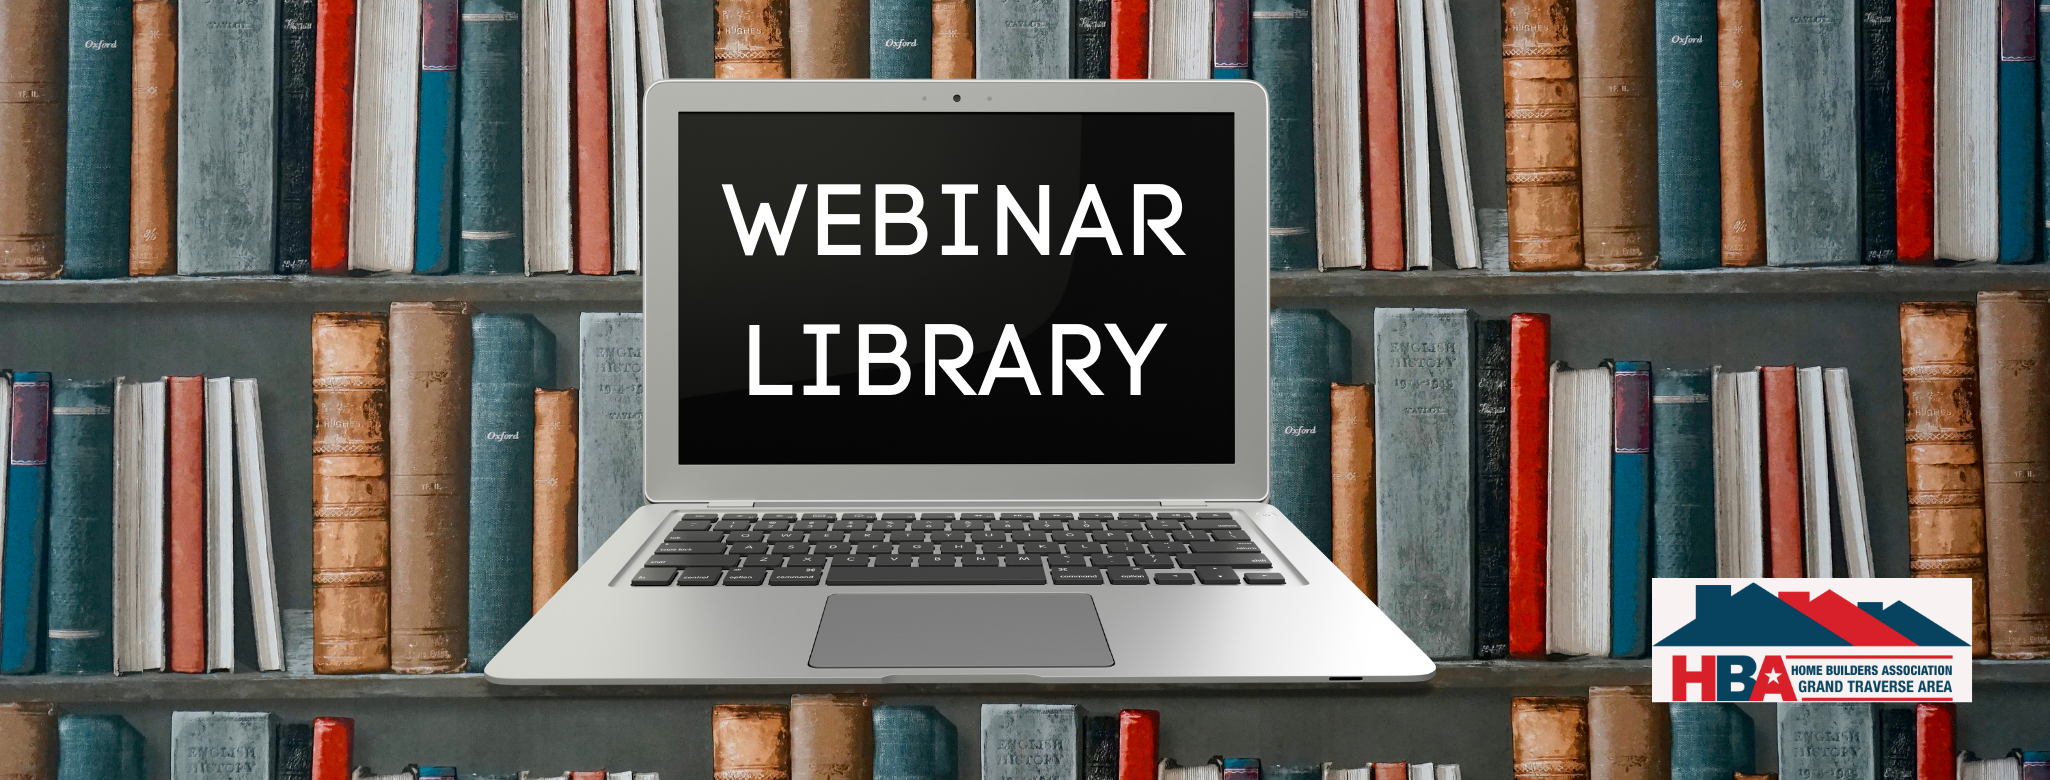 201119 Webinar Library Graphic